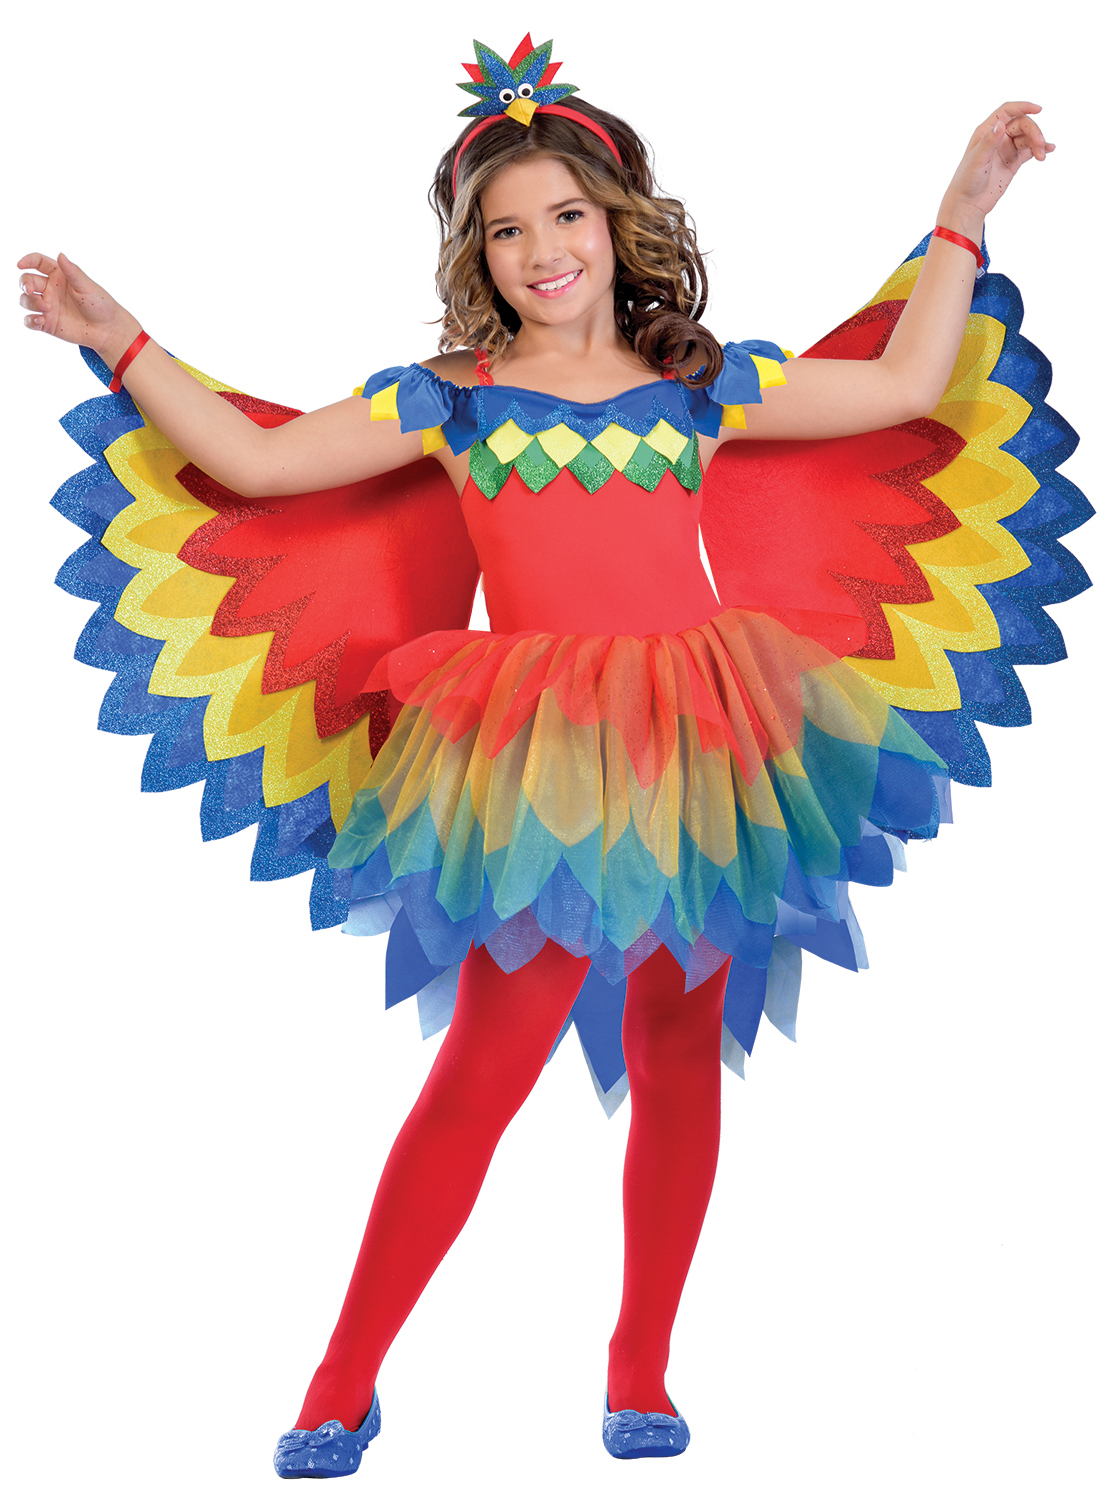 Sentinel Animal Tutu Girls Fancy Dress Halloween Fairytale Kids Childrens Teen Costumes  sc 1 st  eBay & Animal Tutu Girls Fancy Dress Halloween Fairytale Kids Childrens ...